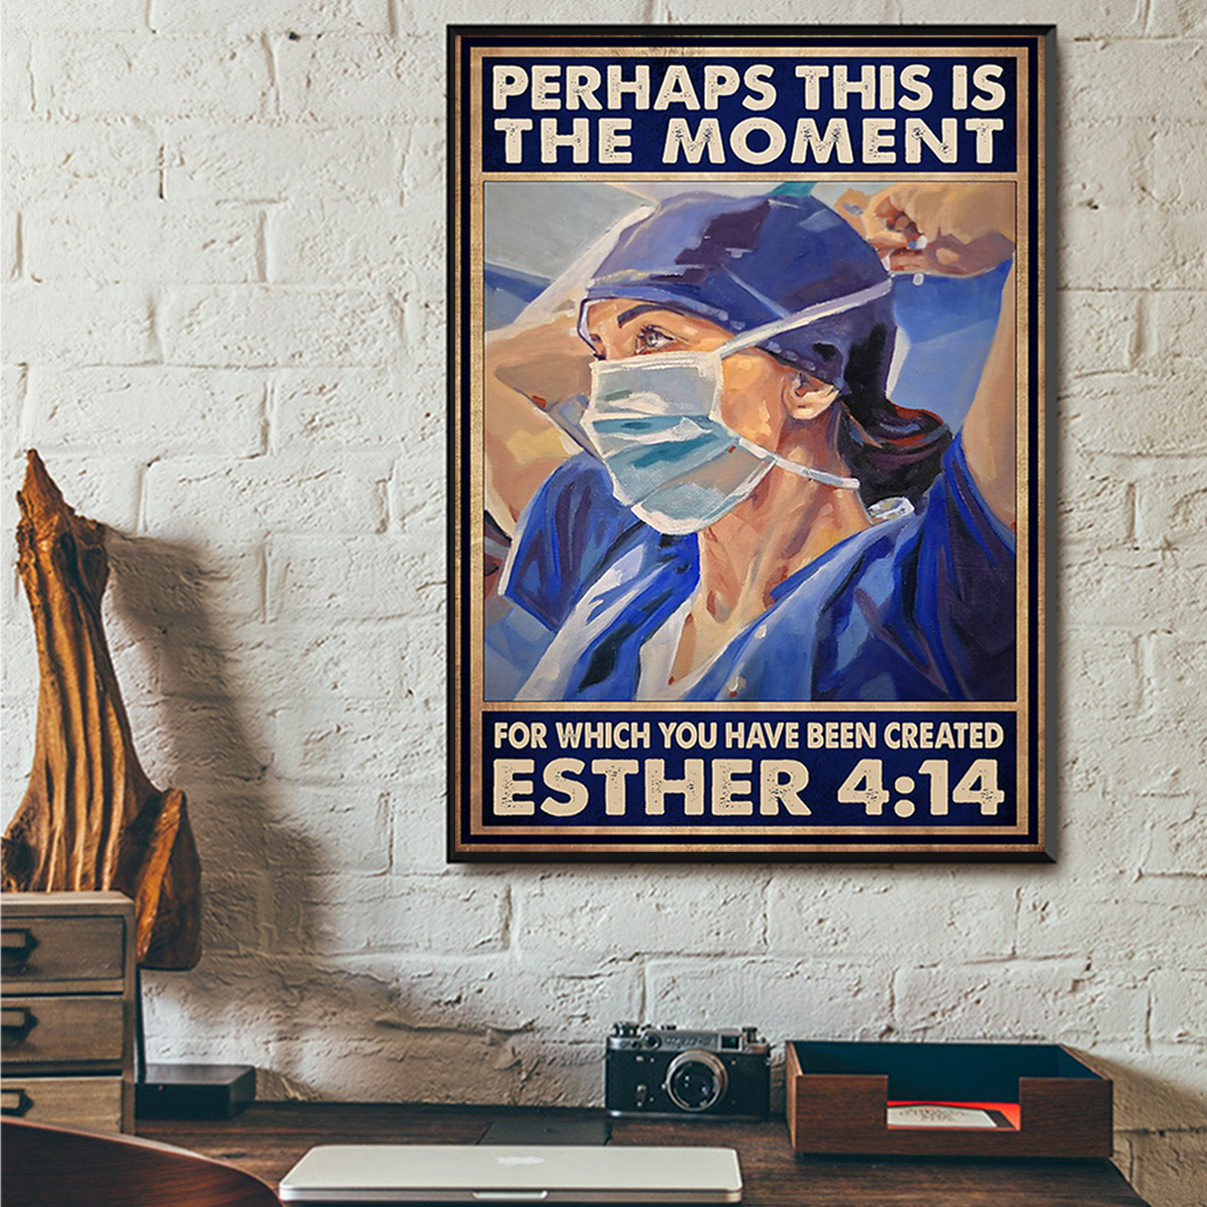 Nurse perhaps this is the moment for which you have been created poster A1